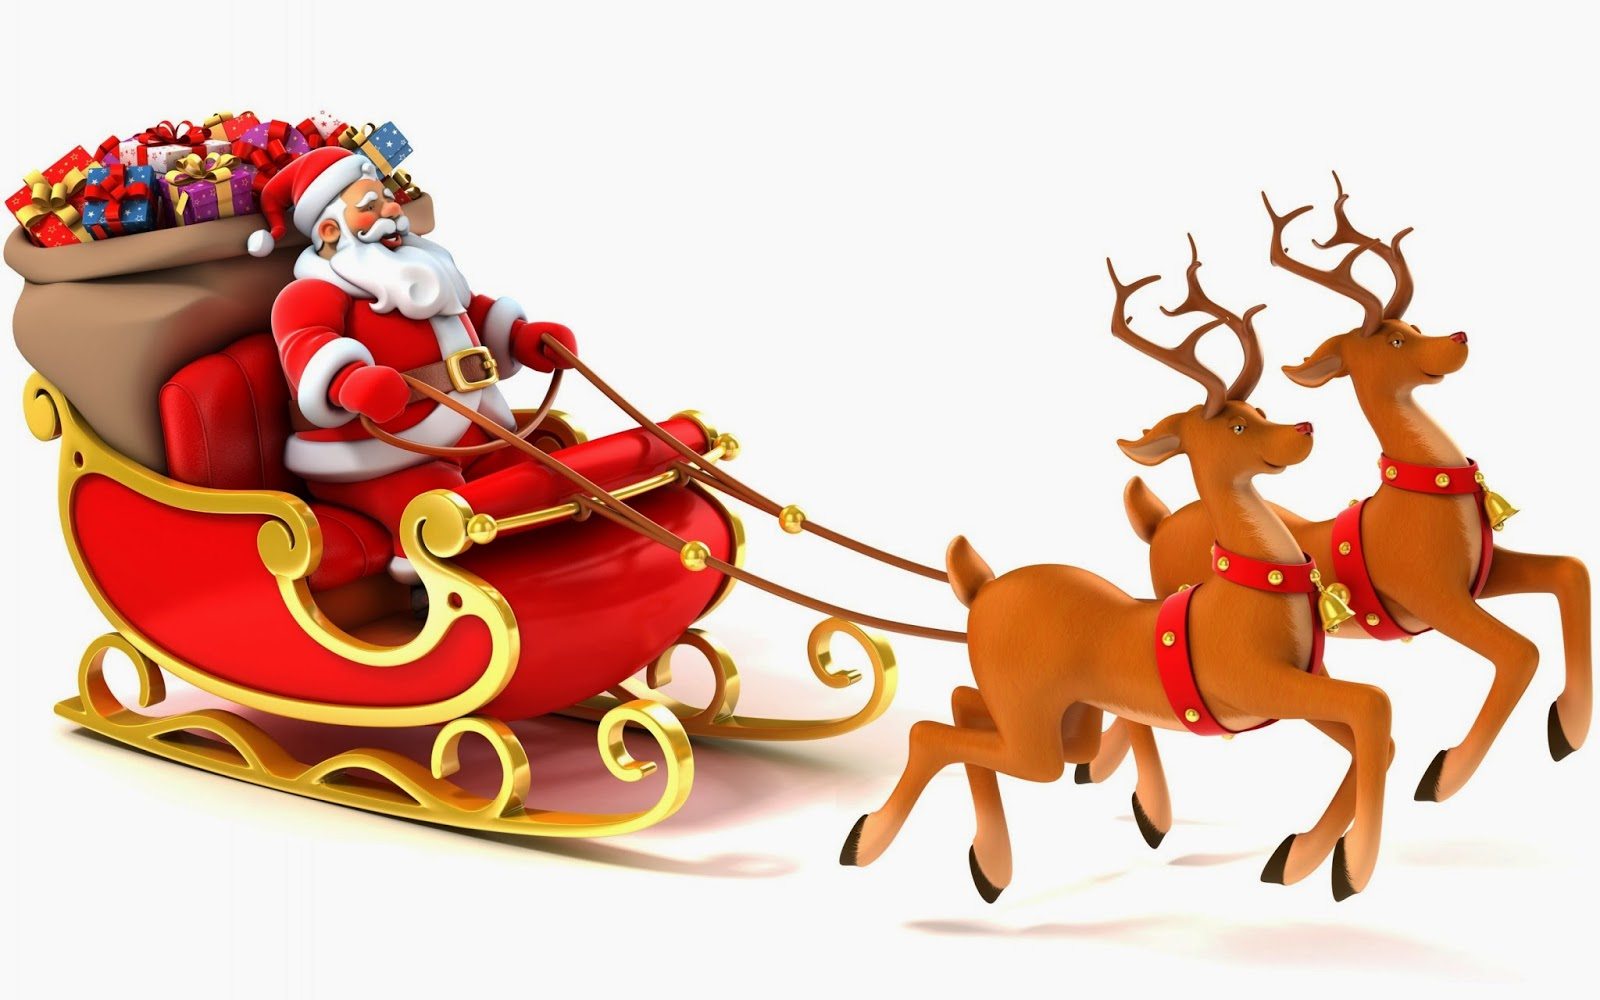 Sled santa clipart image black and white library Free Sleigh Cliparts, Download Free Clip Art, Free Clip Art ... image black and white library